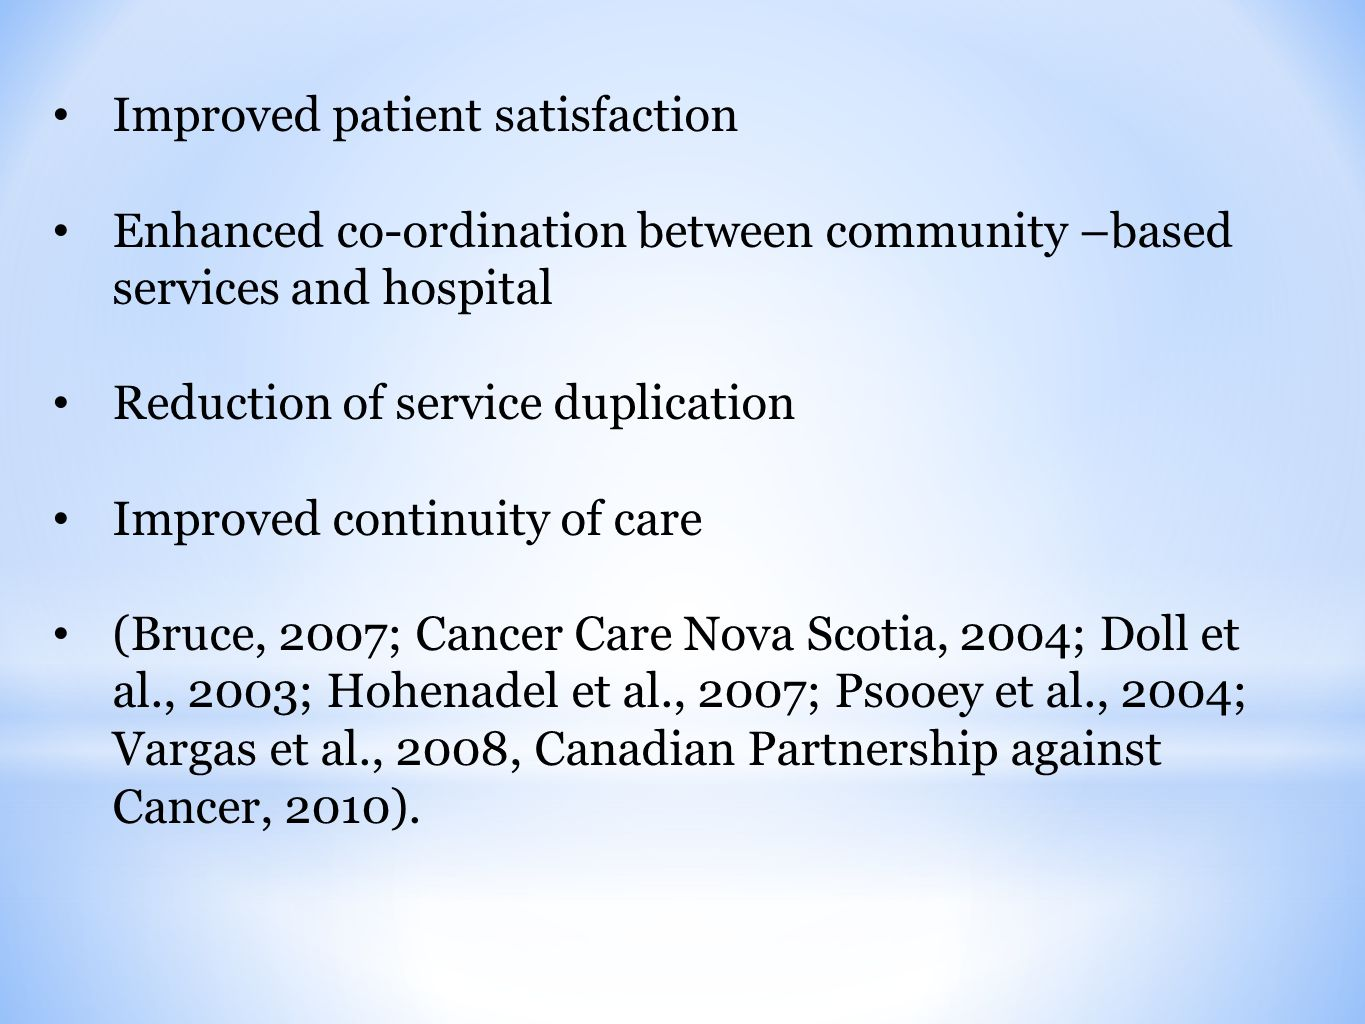 Improved patient satisfaction Enhanced co-ordination between community –based services and hospital Reduction of service duplication Improved continuity of care (Bruce, 2007; Cancer Care Nova Scotia, 2004; Doll et al., 2003; Hohenadel et al., 2007; Psooey et al., 2004; Vargas et al., 2008, Canadian Partnership against Cancer, 2010).